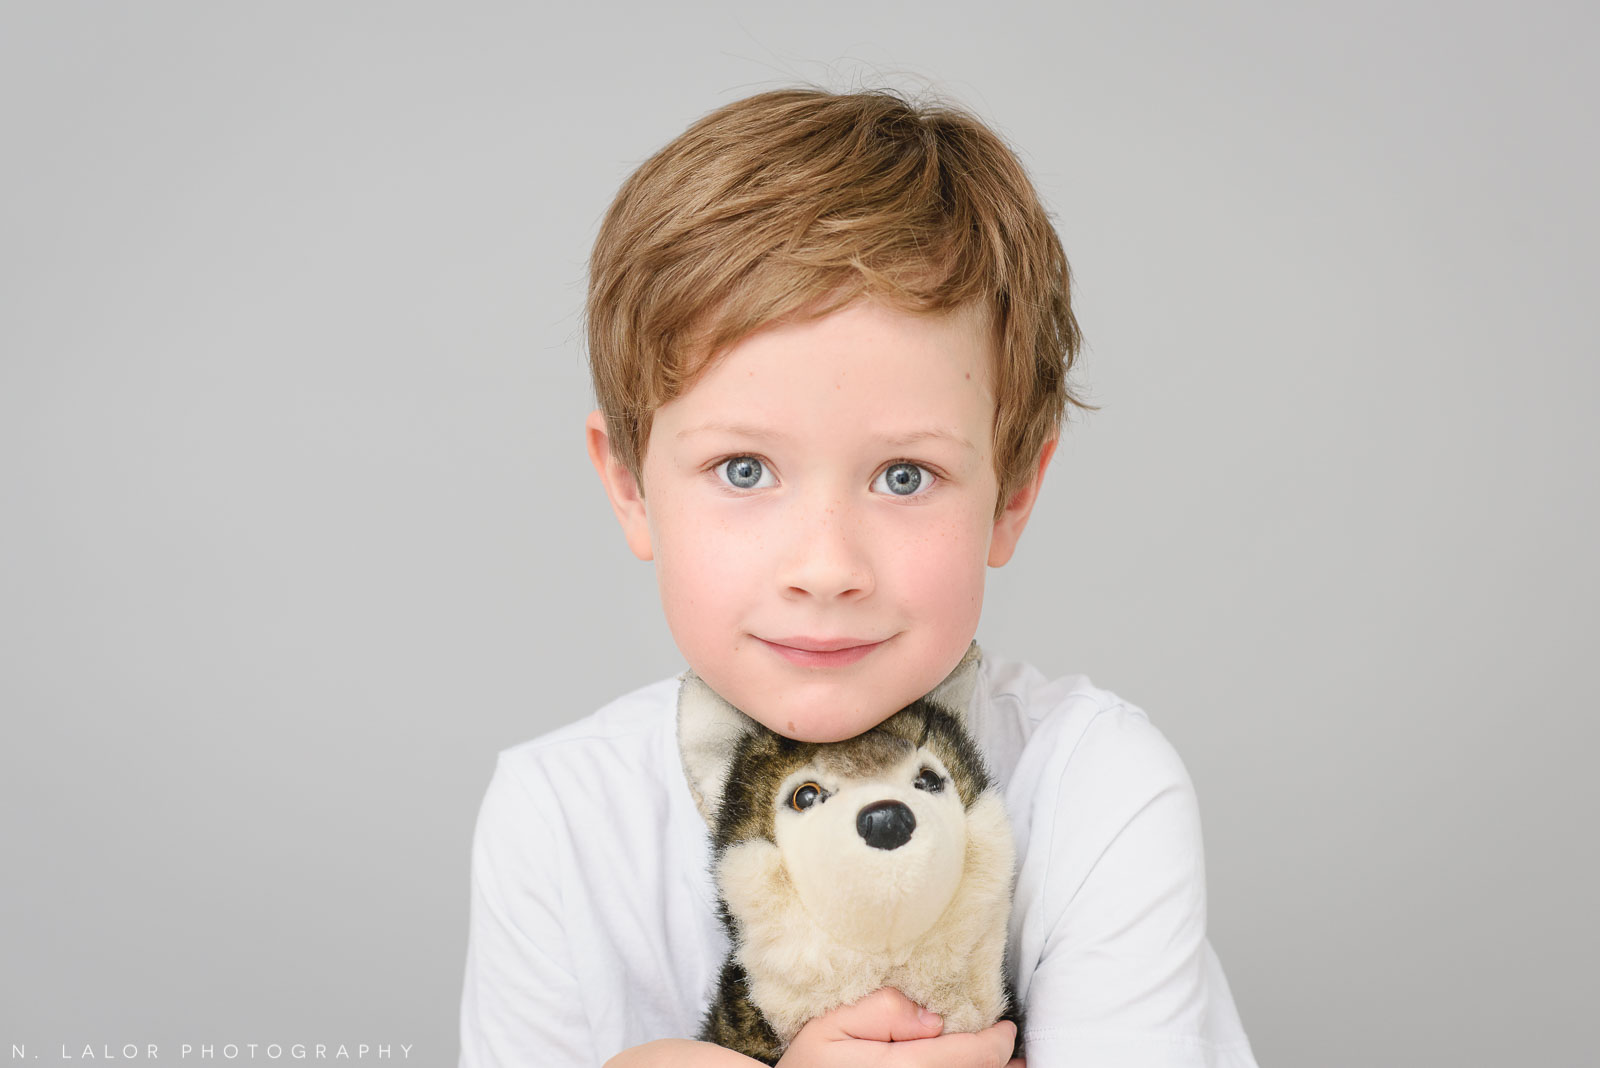 7-year old boy with his favorite stuffed toy. Simple studio portrait session with N. Lalor Photography in Greenwich, CT.